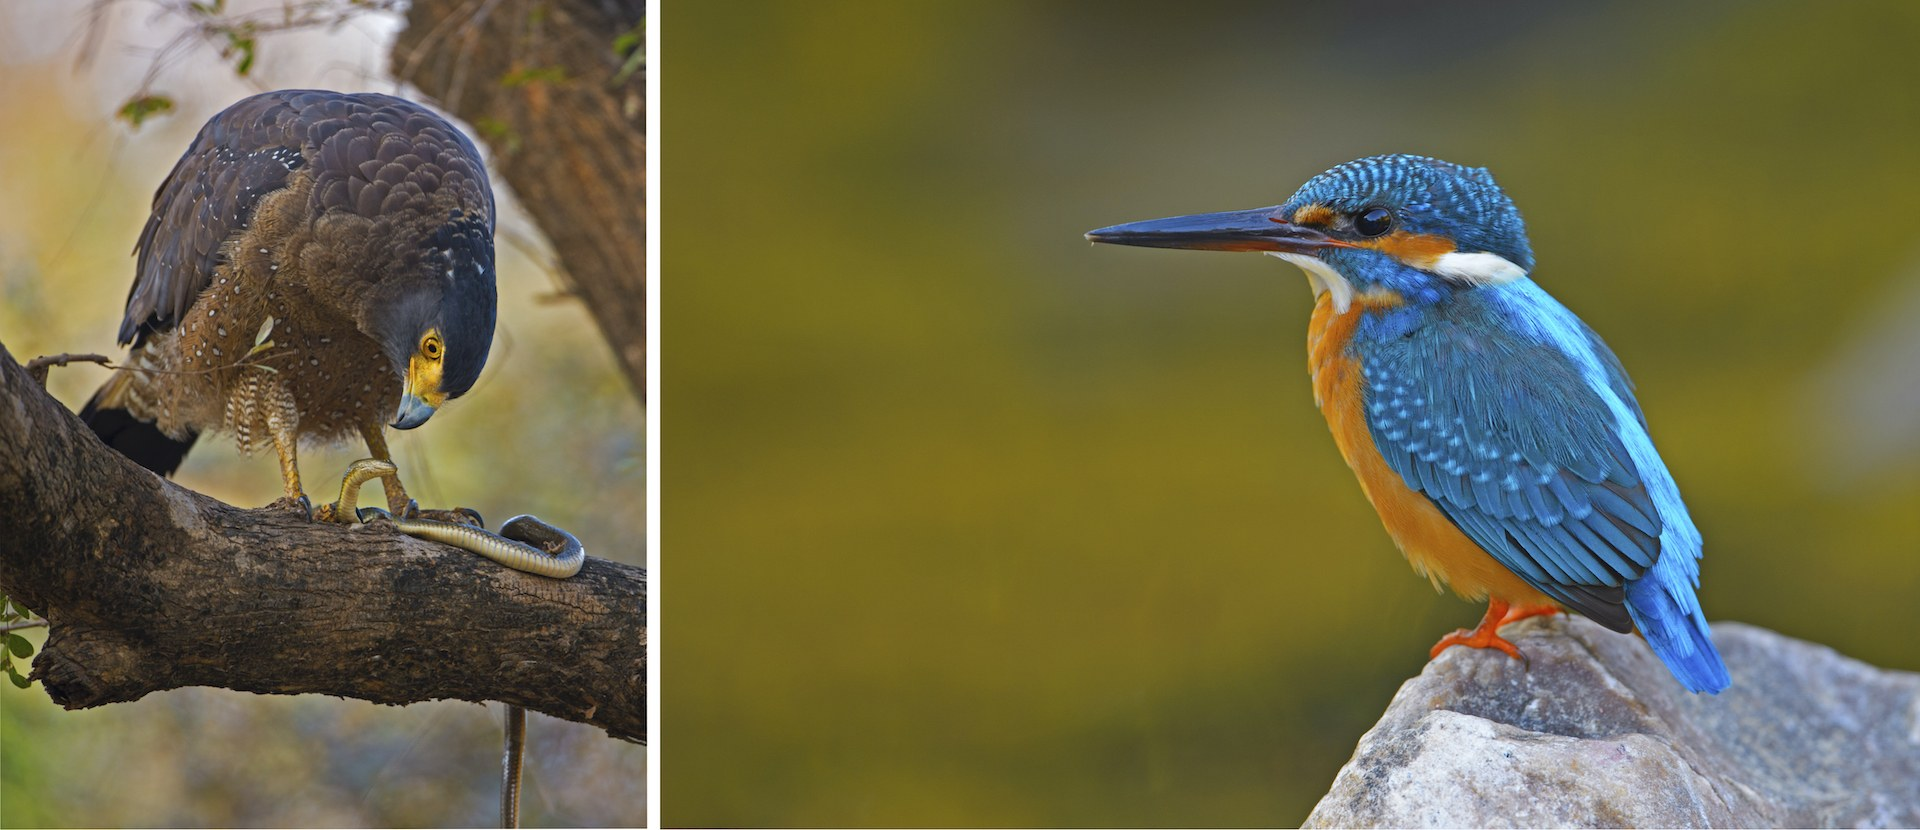 Ranthambore offers glimpses of many winged wonders. While its name suggests a hunter of snakes, the crested serpent eagle (left) is an adept hunter of other smaller life forms as well, including a variety of small reptiles, amphibians, and mammals. The common kingfisher (right), named for its wide distribution range, not because it is common to see, is seen mostly around water, jetting off, hovering, and diving for aquatic prey of fish and small invertebrates. Photo: Dhritiman Mukherjee